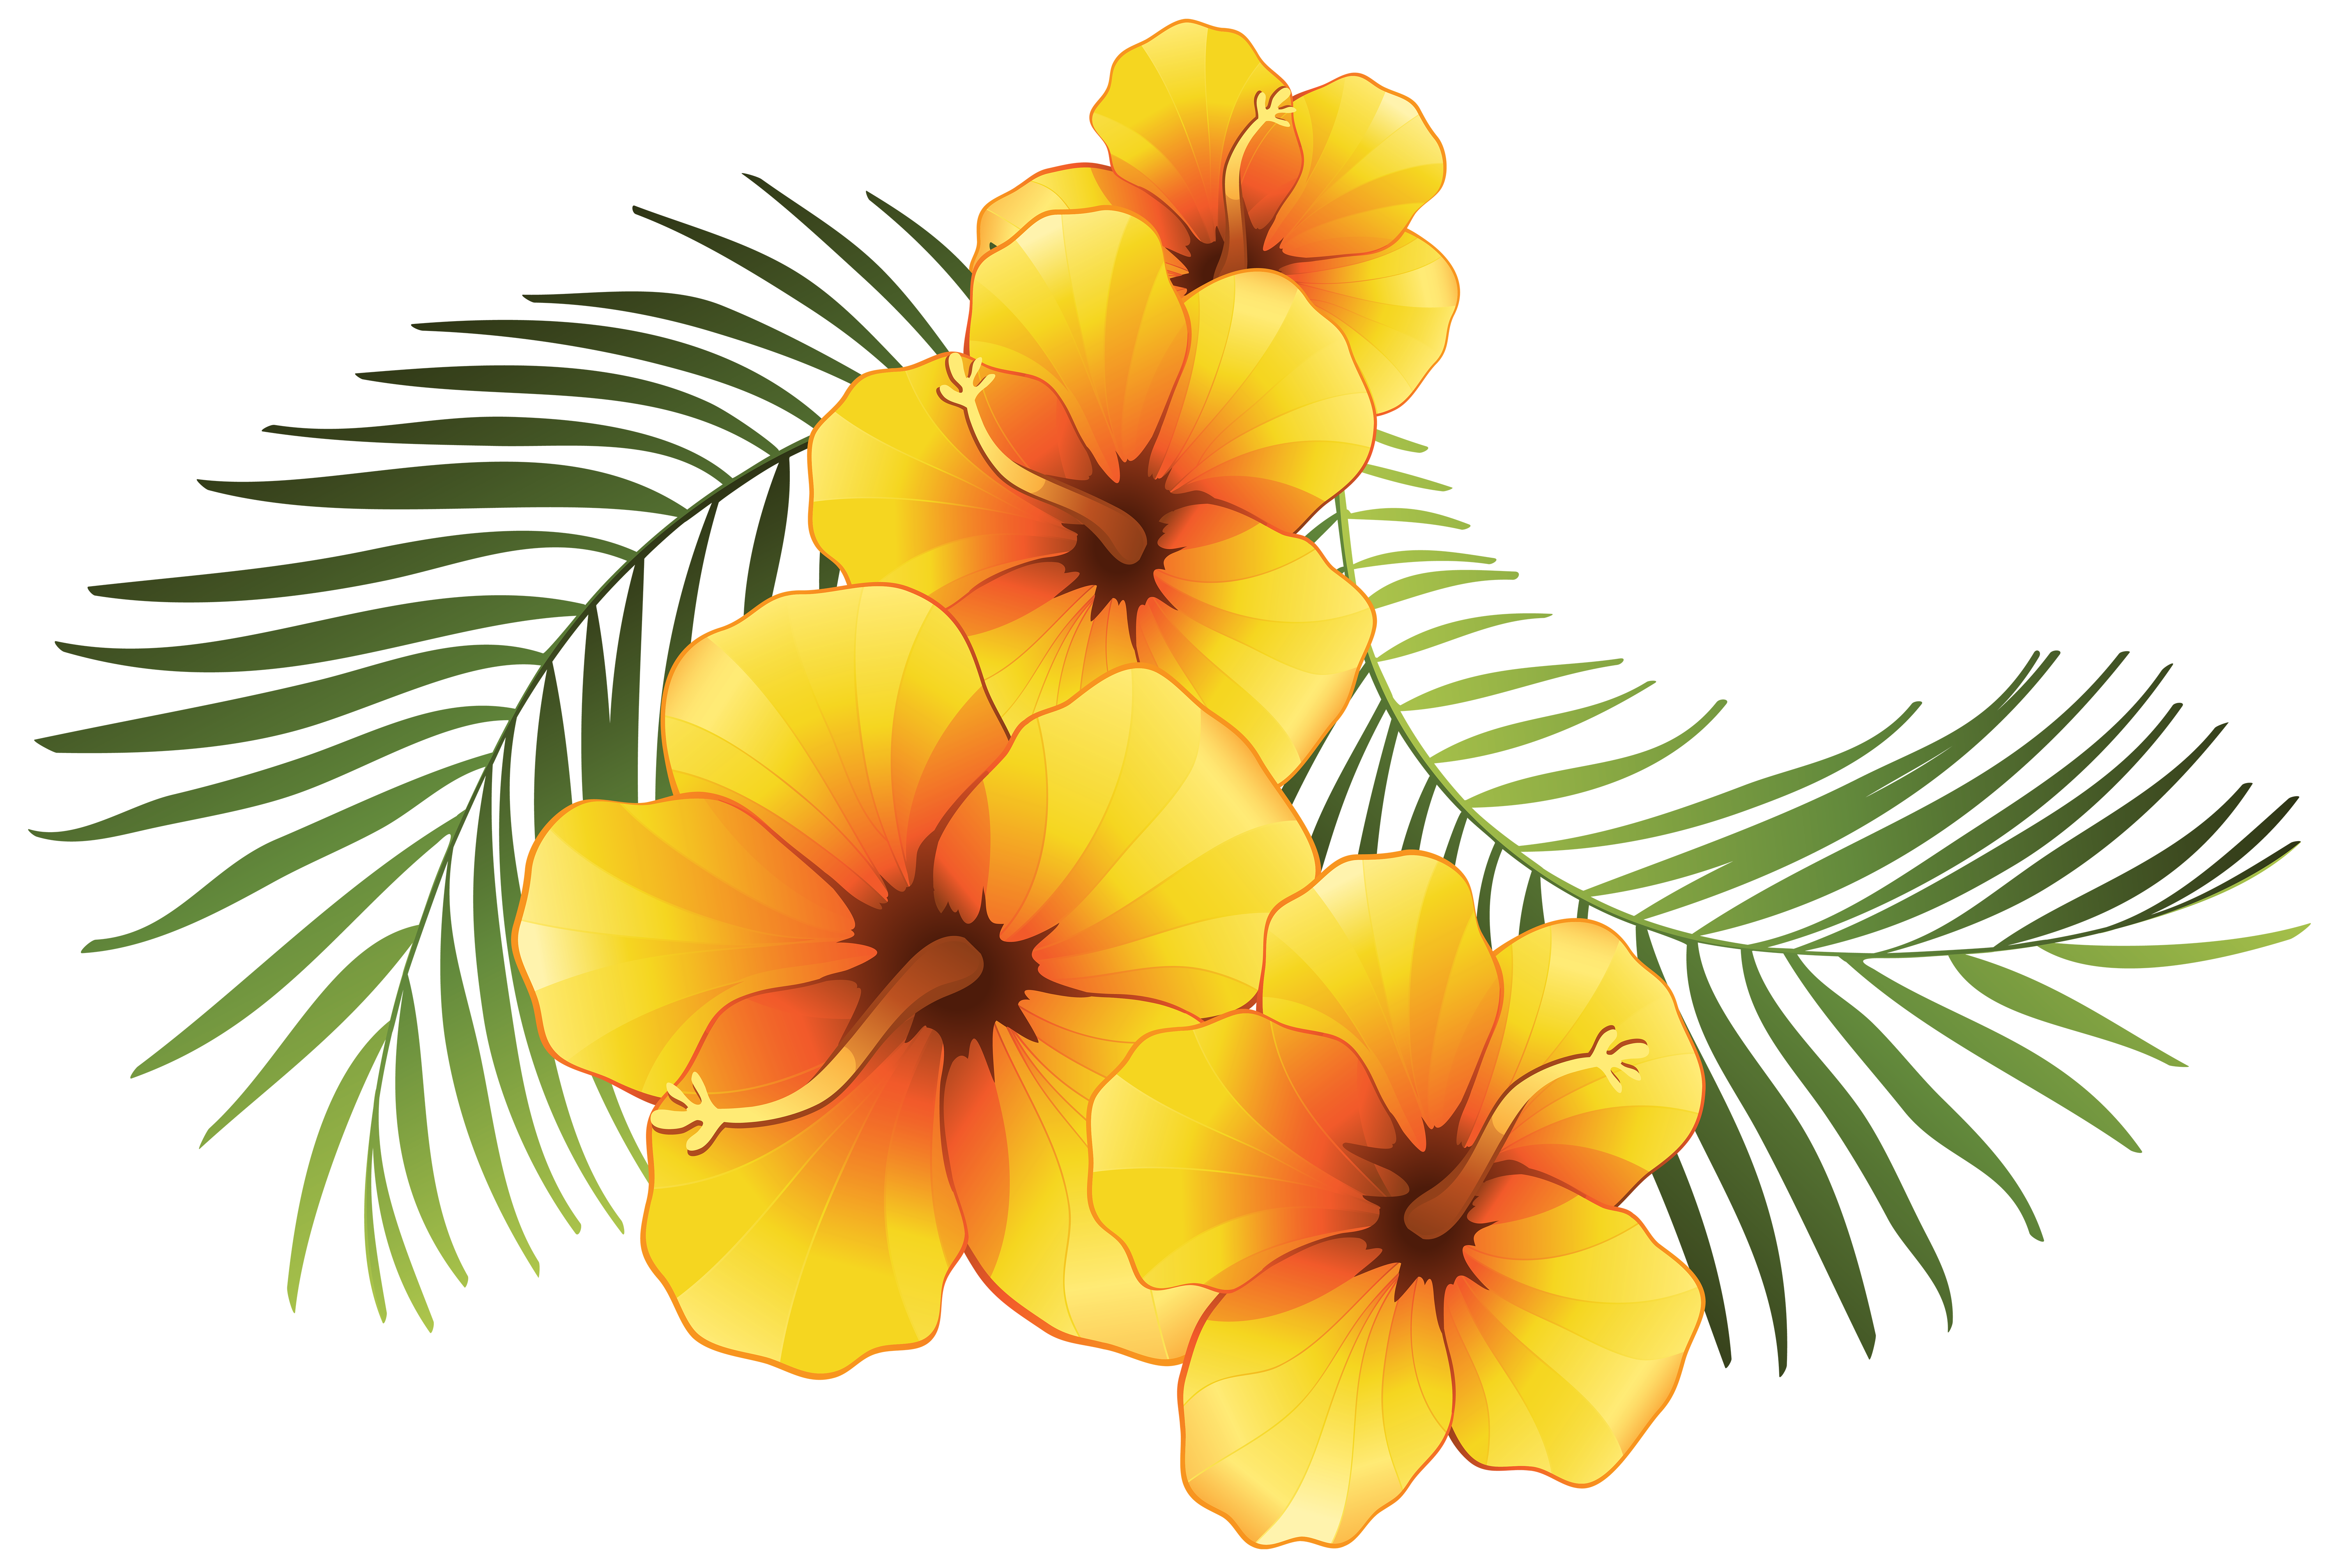 Ballroom flower clipart image free stock Plumeria Clipart at GetDrawings.com | Free for personal use Plumeria ... image free stock